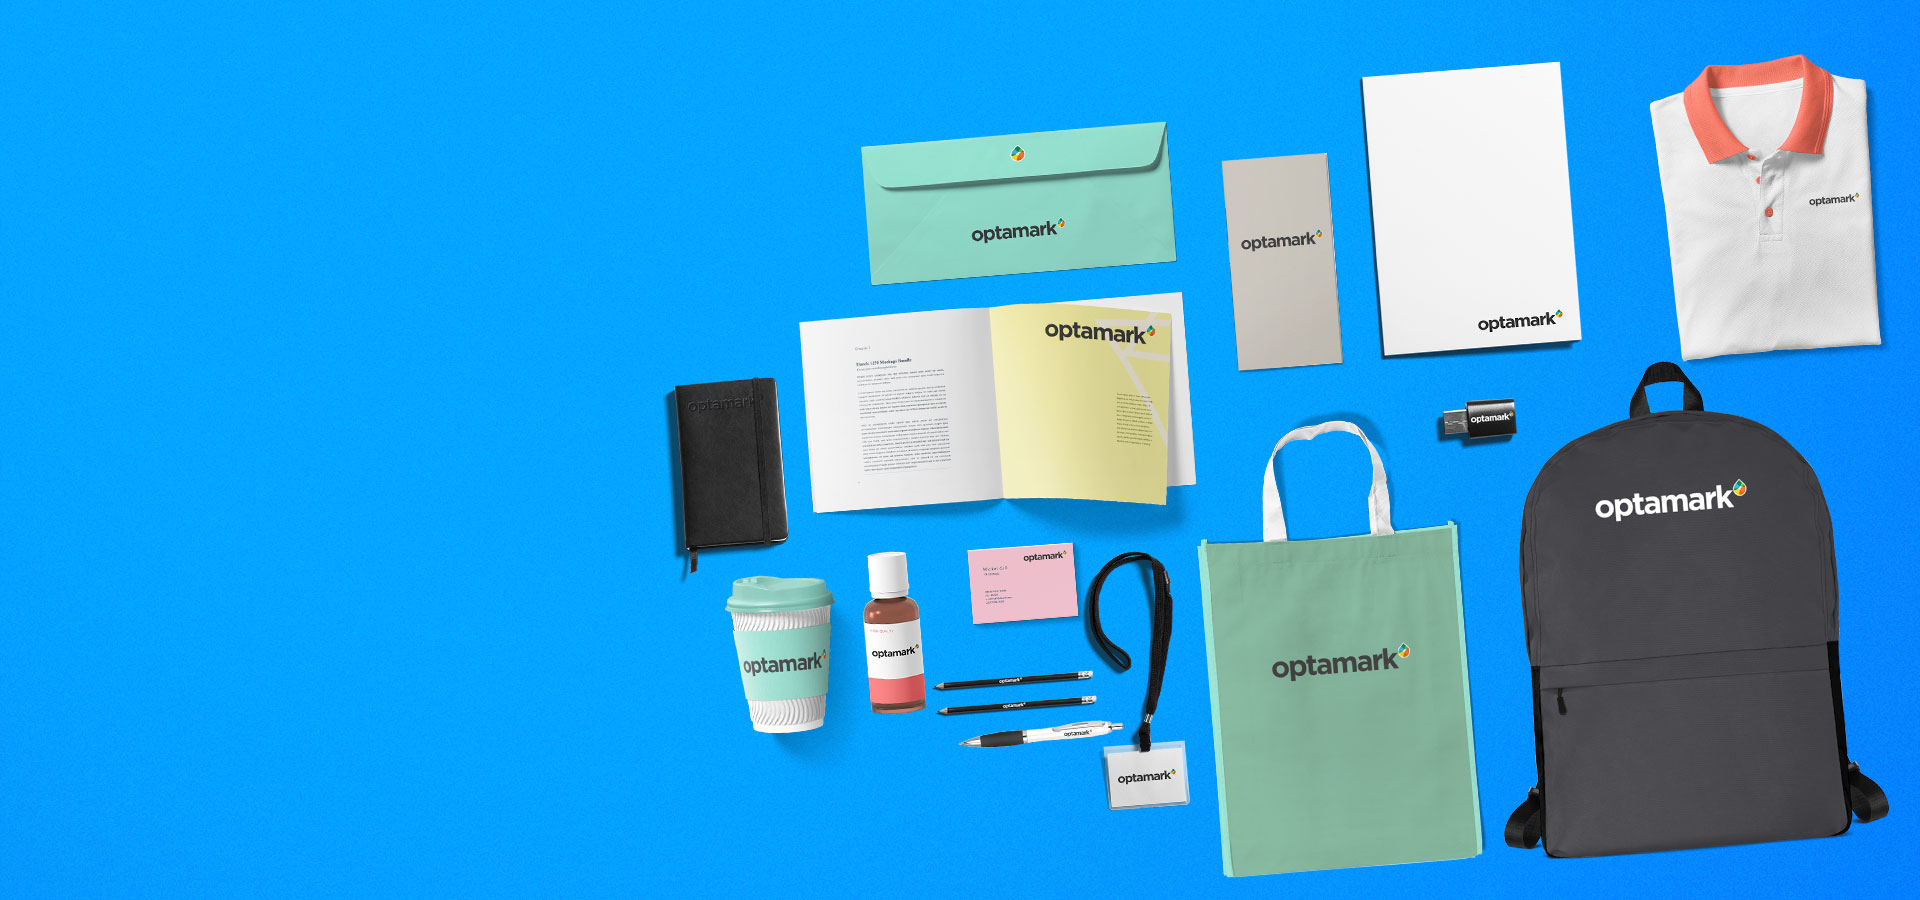 Know How to Promote Your Brand: The Importance of Promotional Products